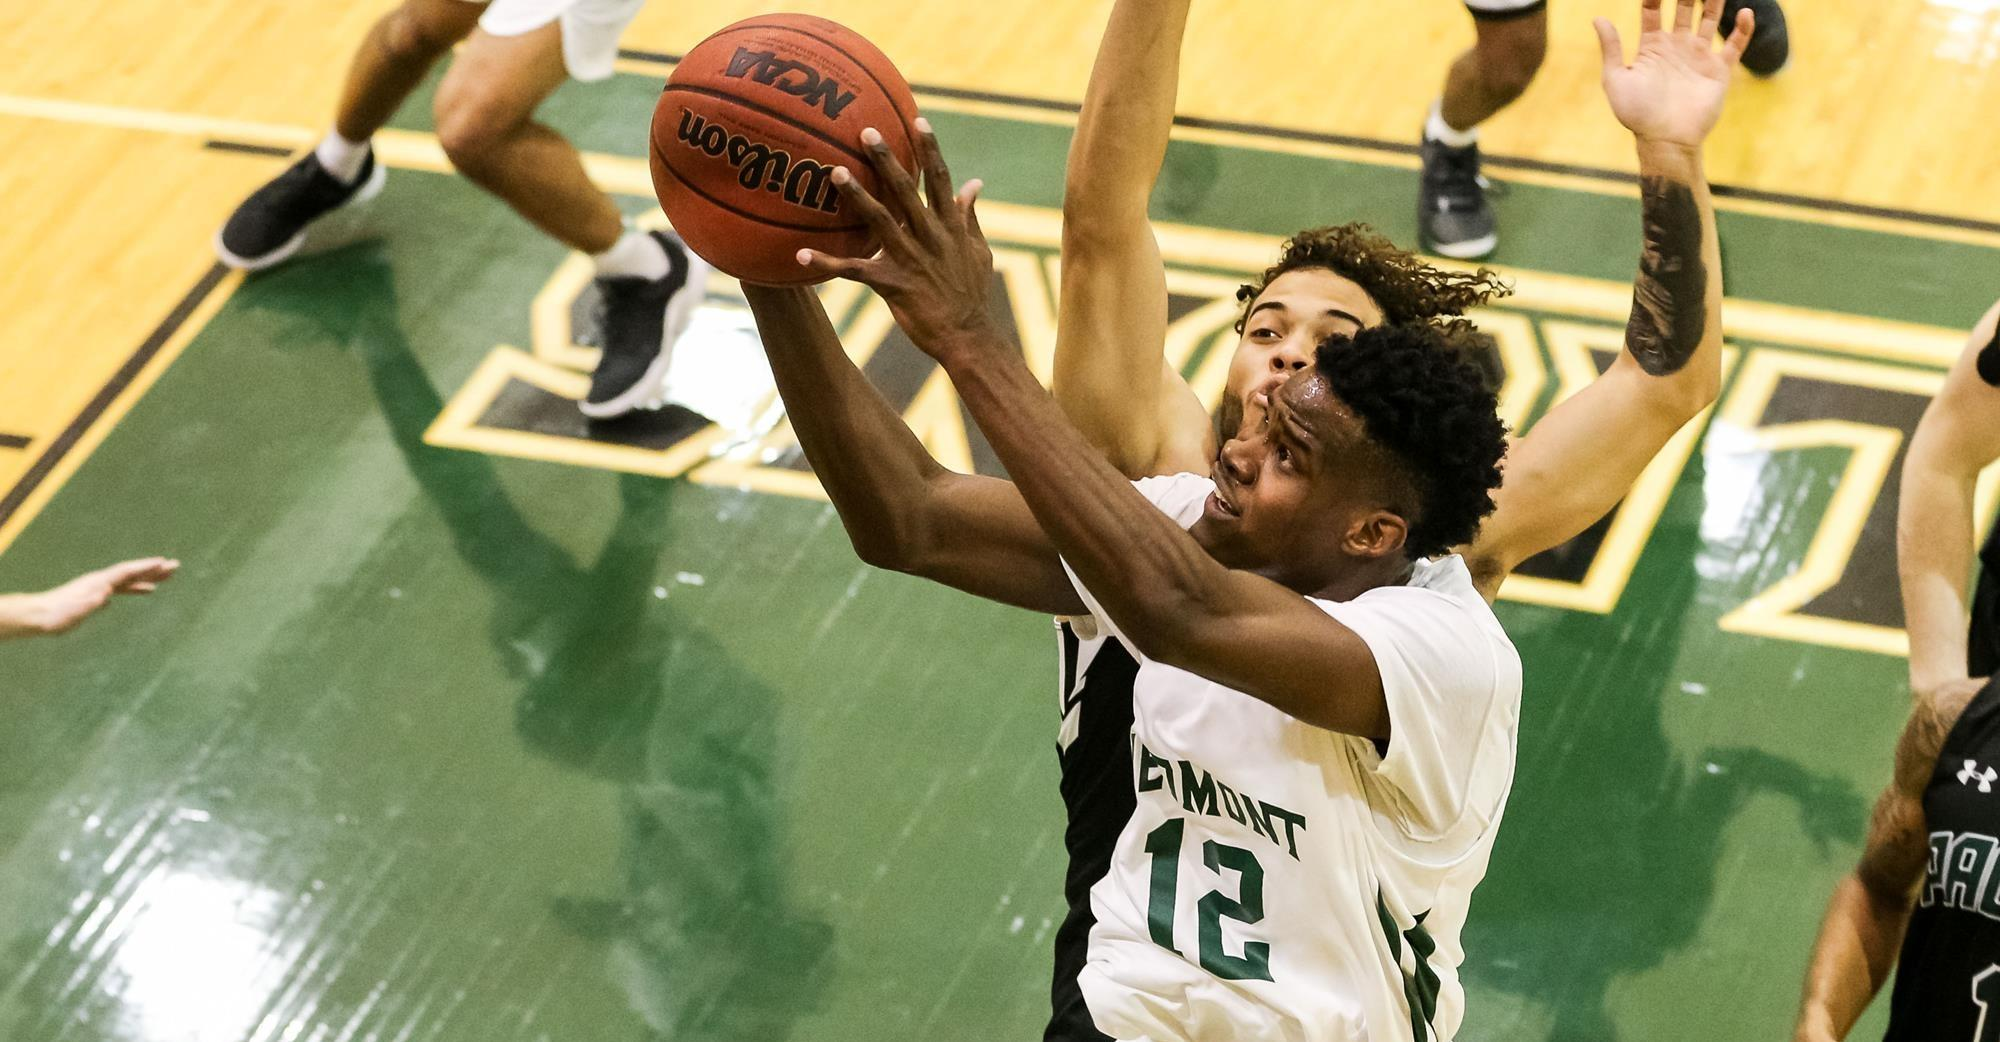 Lanier drives into the paint for a tough layup against William Peace. PHOTO / KARL L. MOORE